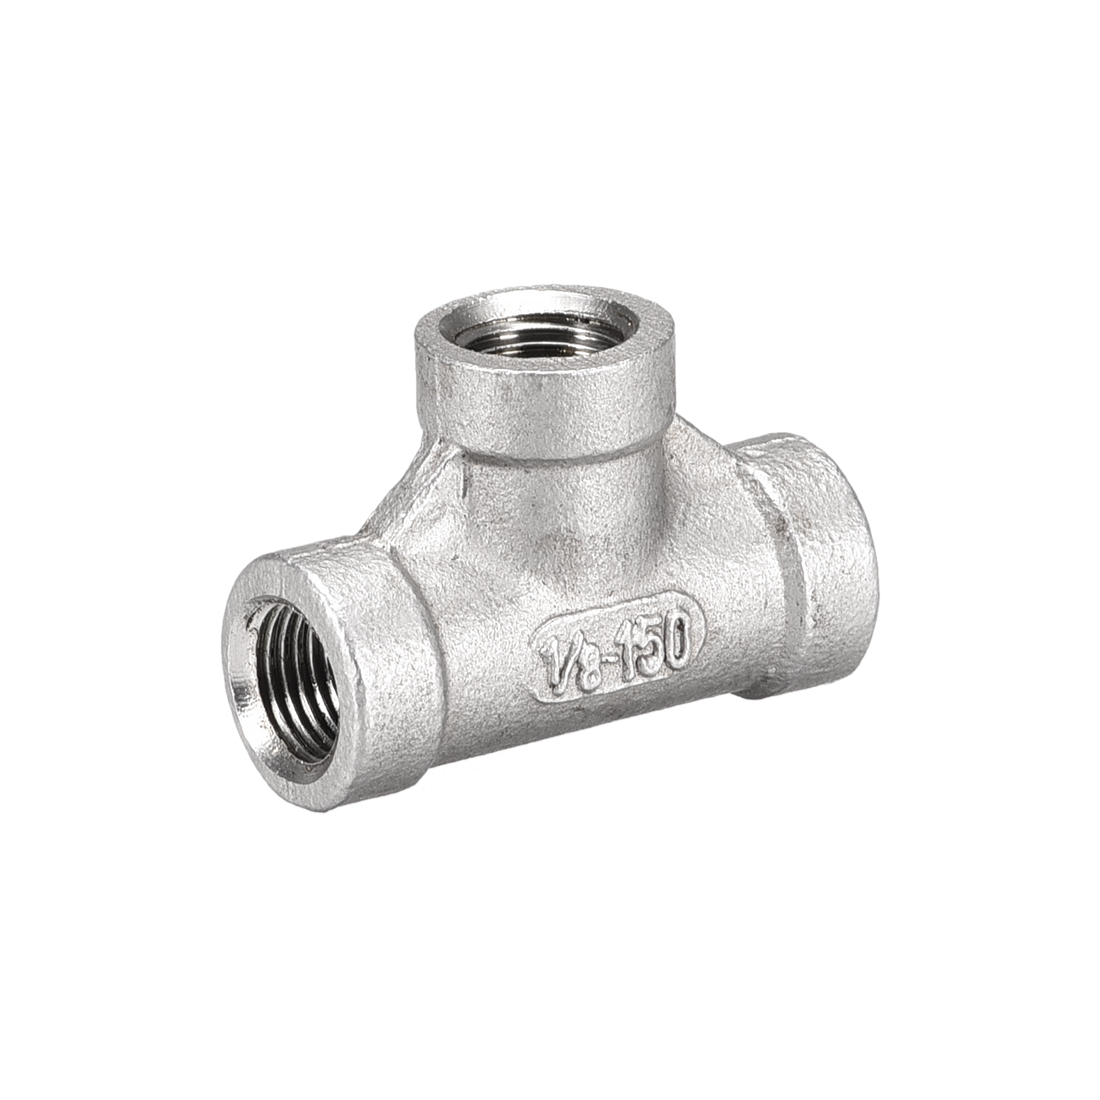 Stainless Steel 304 Cast Pipe Fitting 1/8BSPT Tee Shaped Connector Coupler